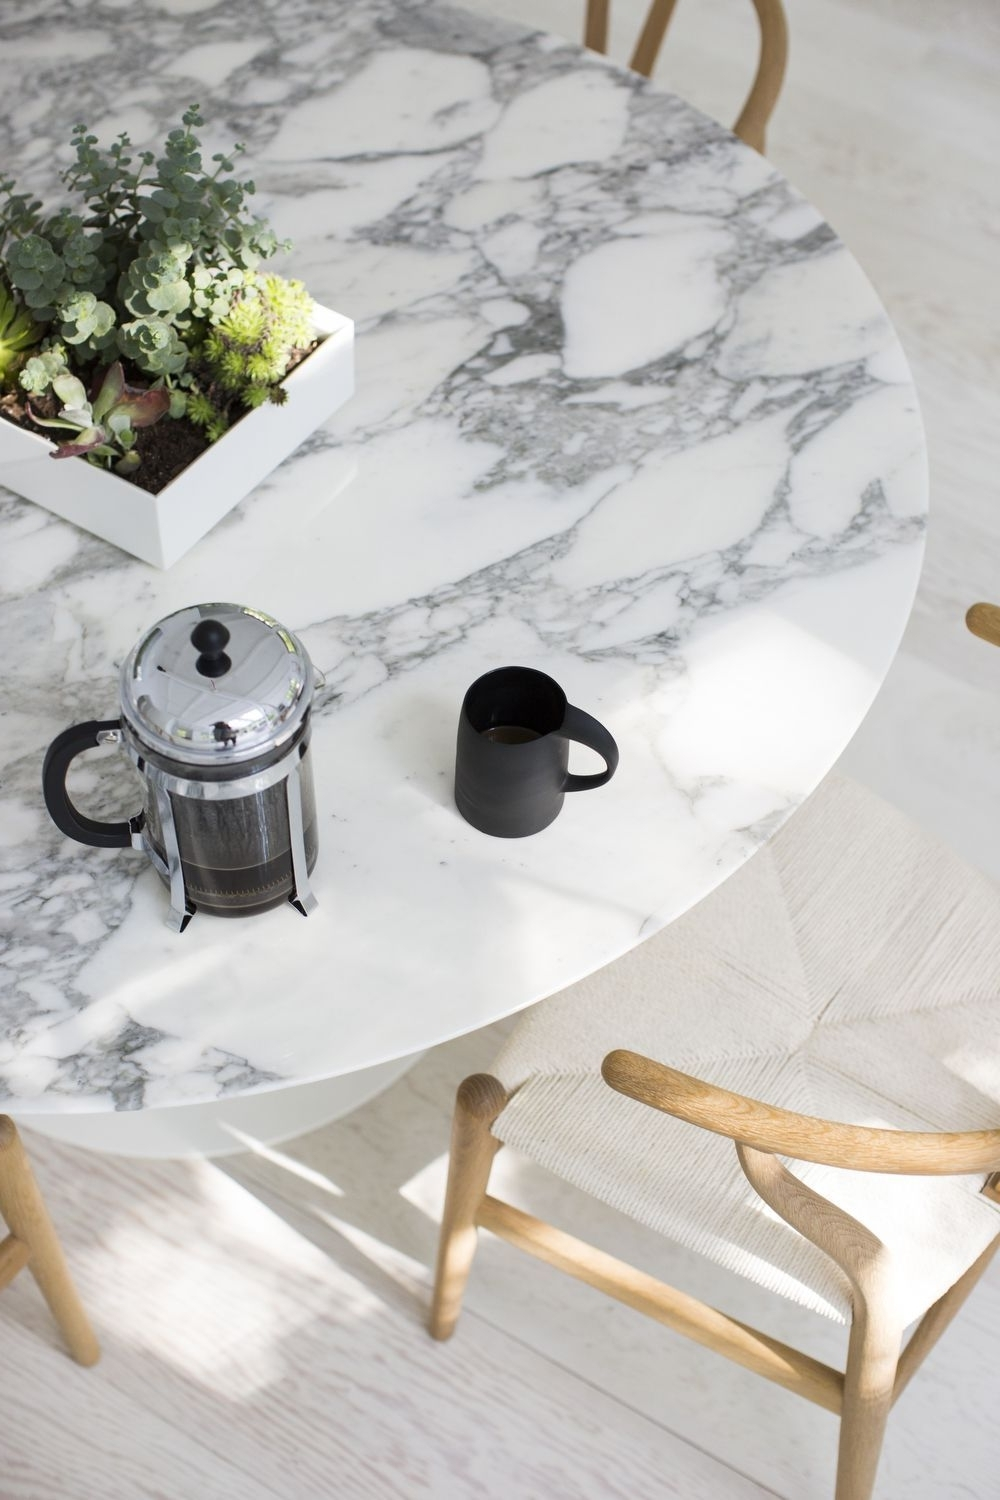 Marble Effect Dining Tables And Chairs With 2017 Cover The Old Oak Table With A Marble Look Tablecloth To Hide The (View 16 of 25)